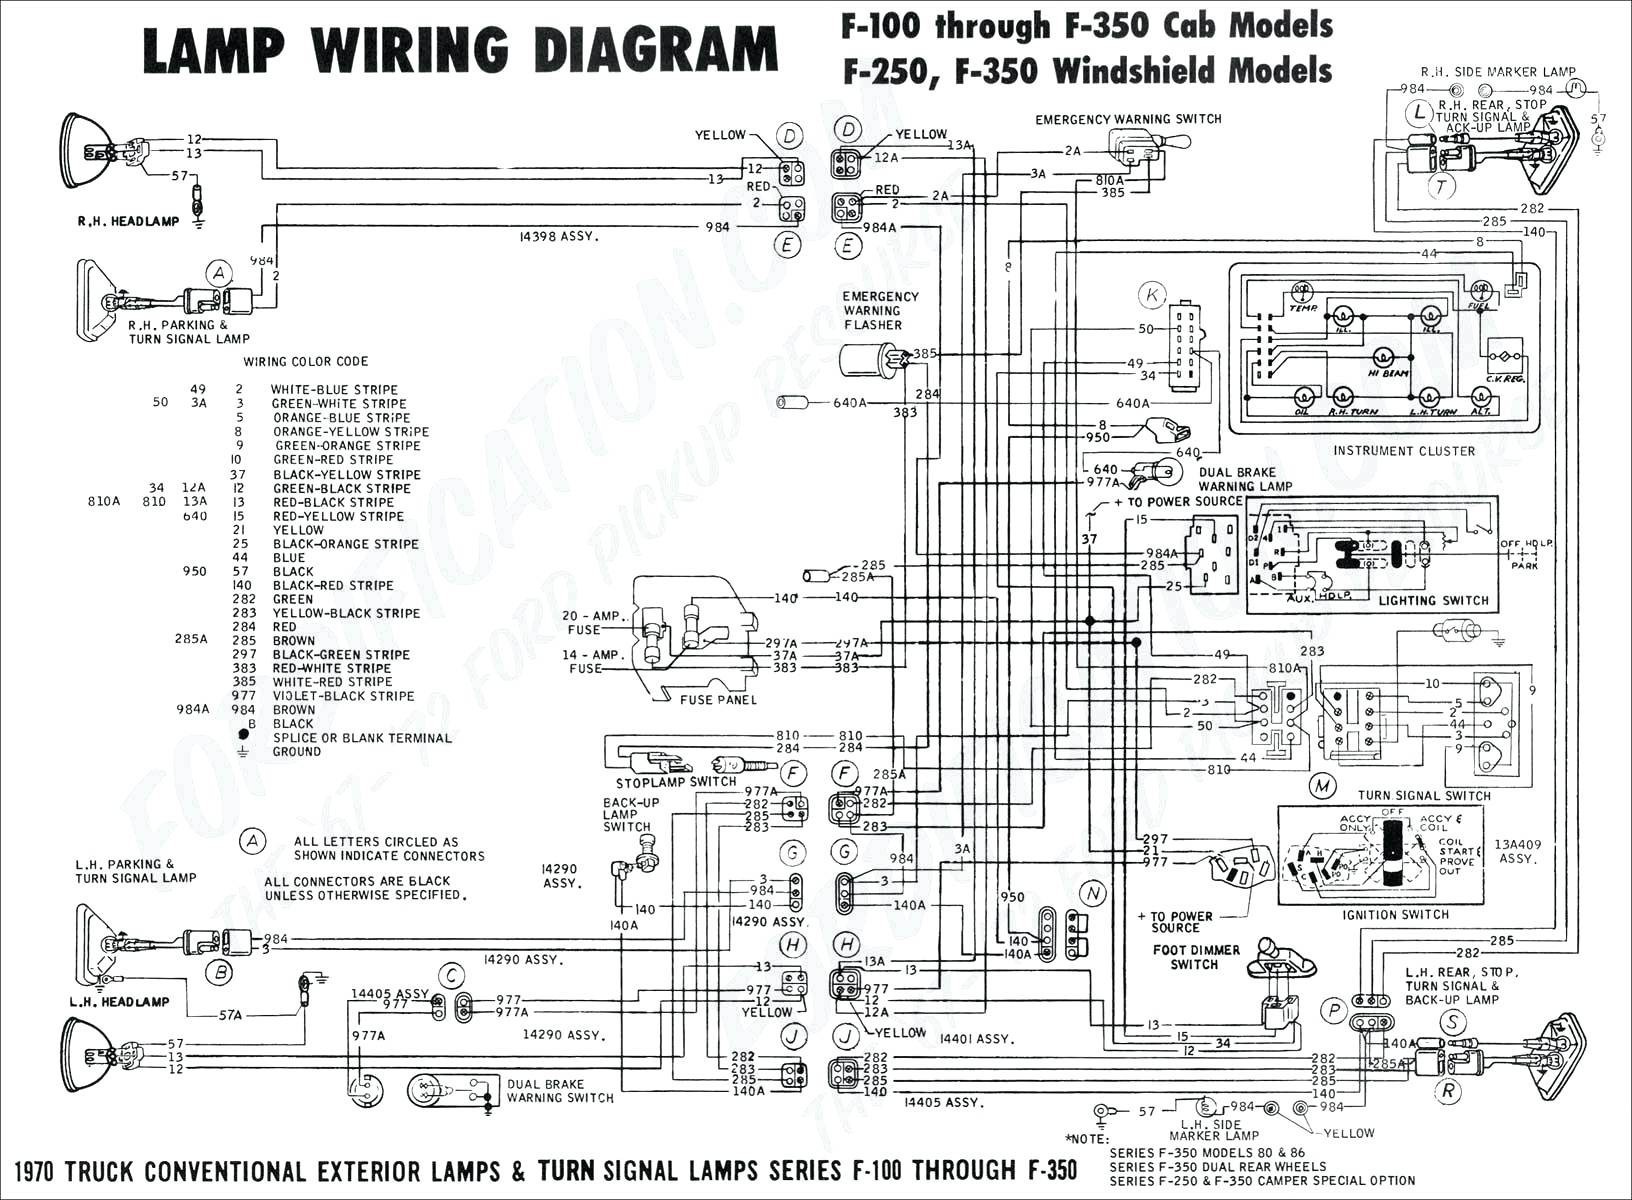 1986 Gmc Radio Wiring - Wiring Diagrams List Radio Wiring Diagram Dodge Pick Up on